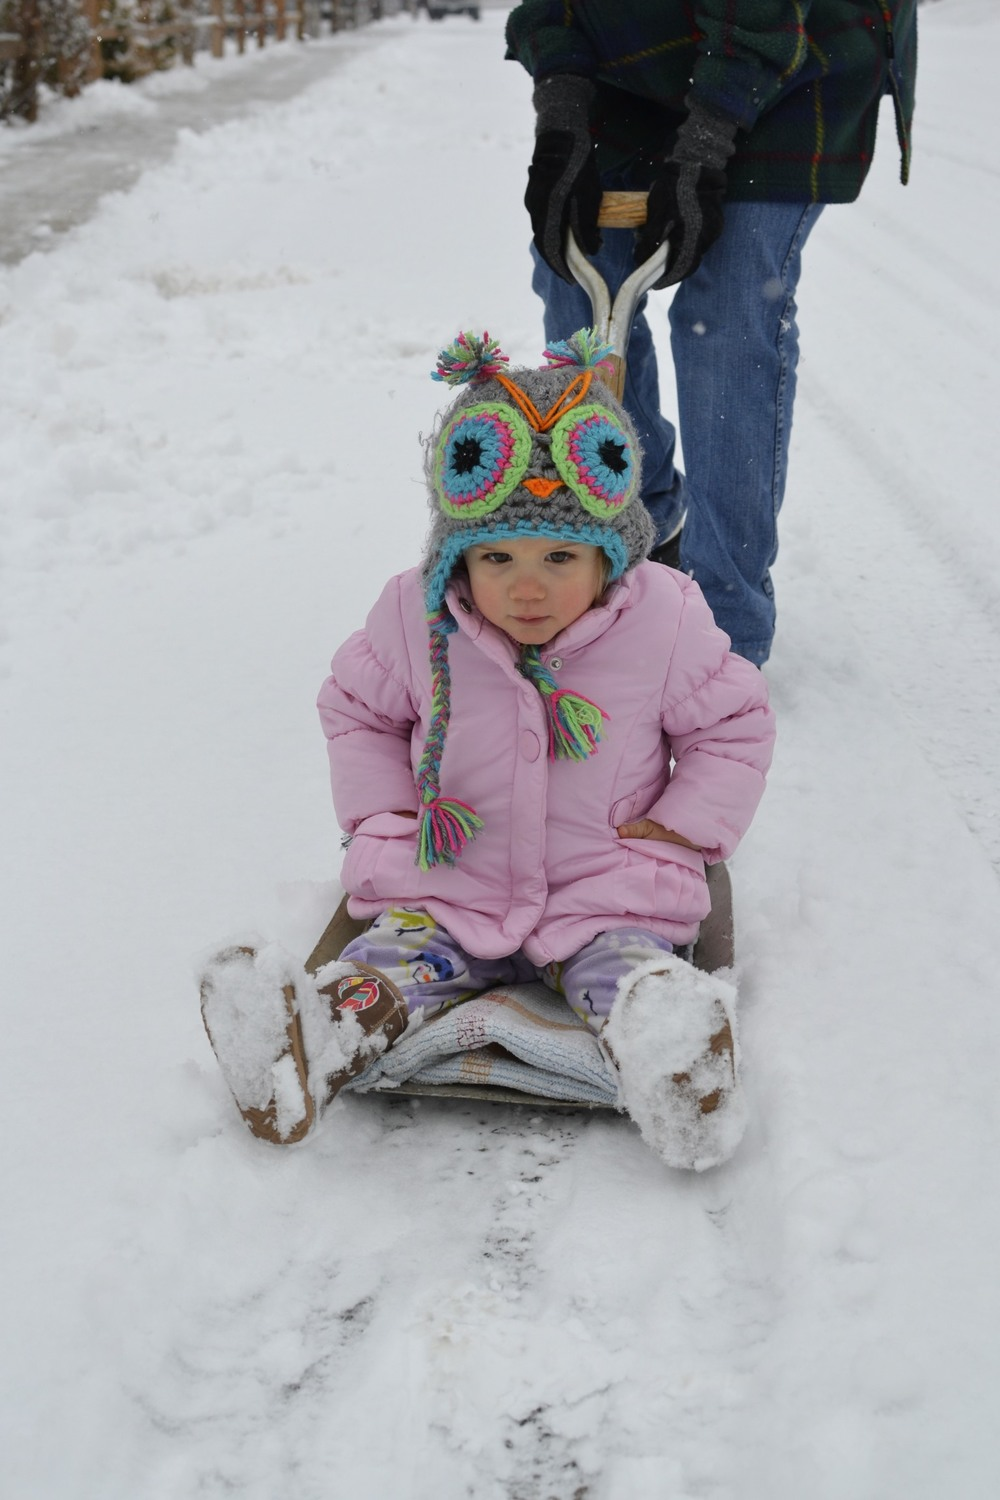 first snow shovel/sled ride!